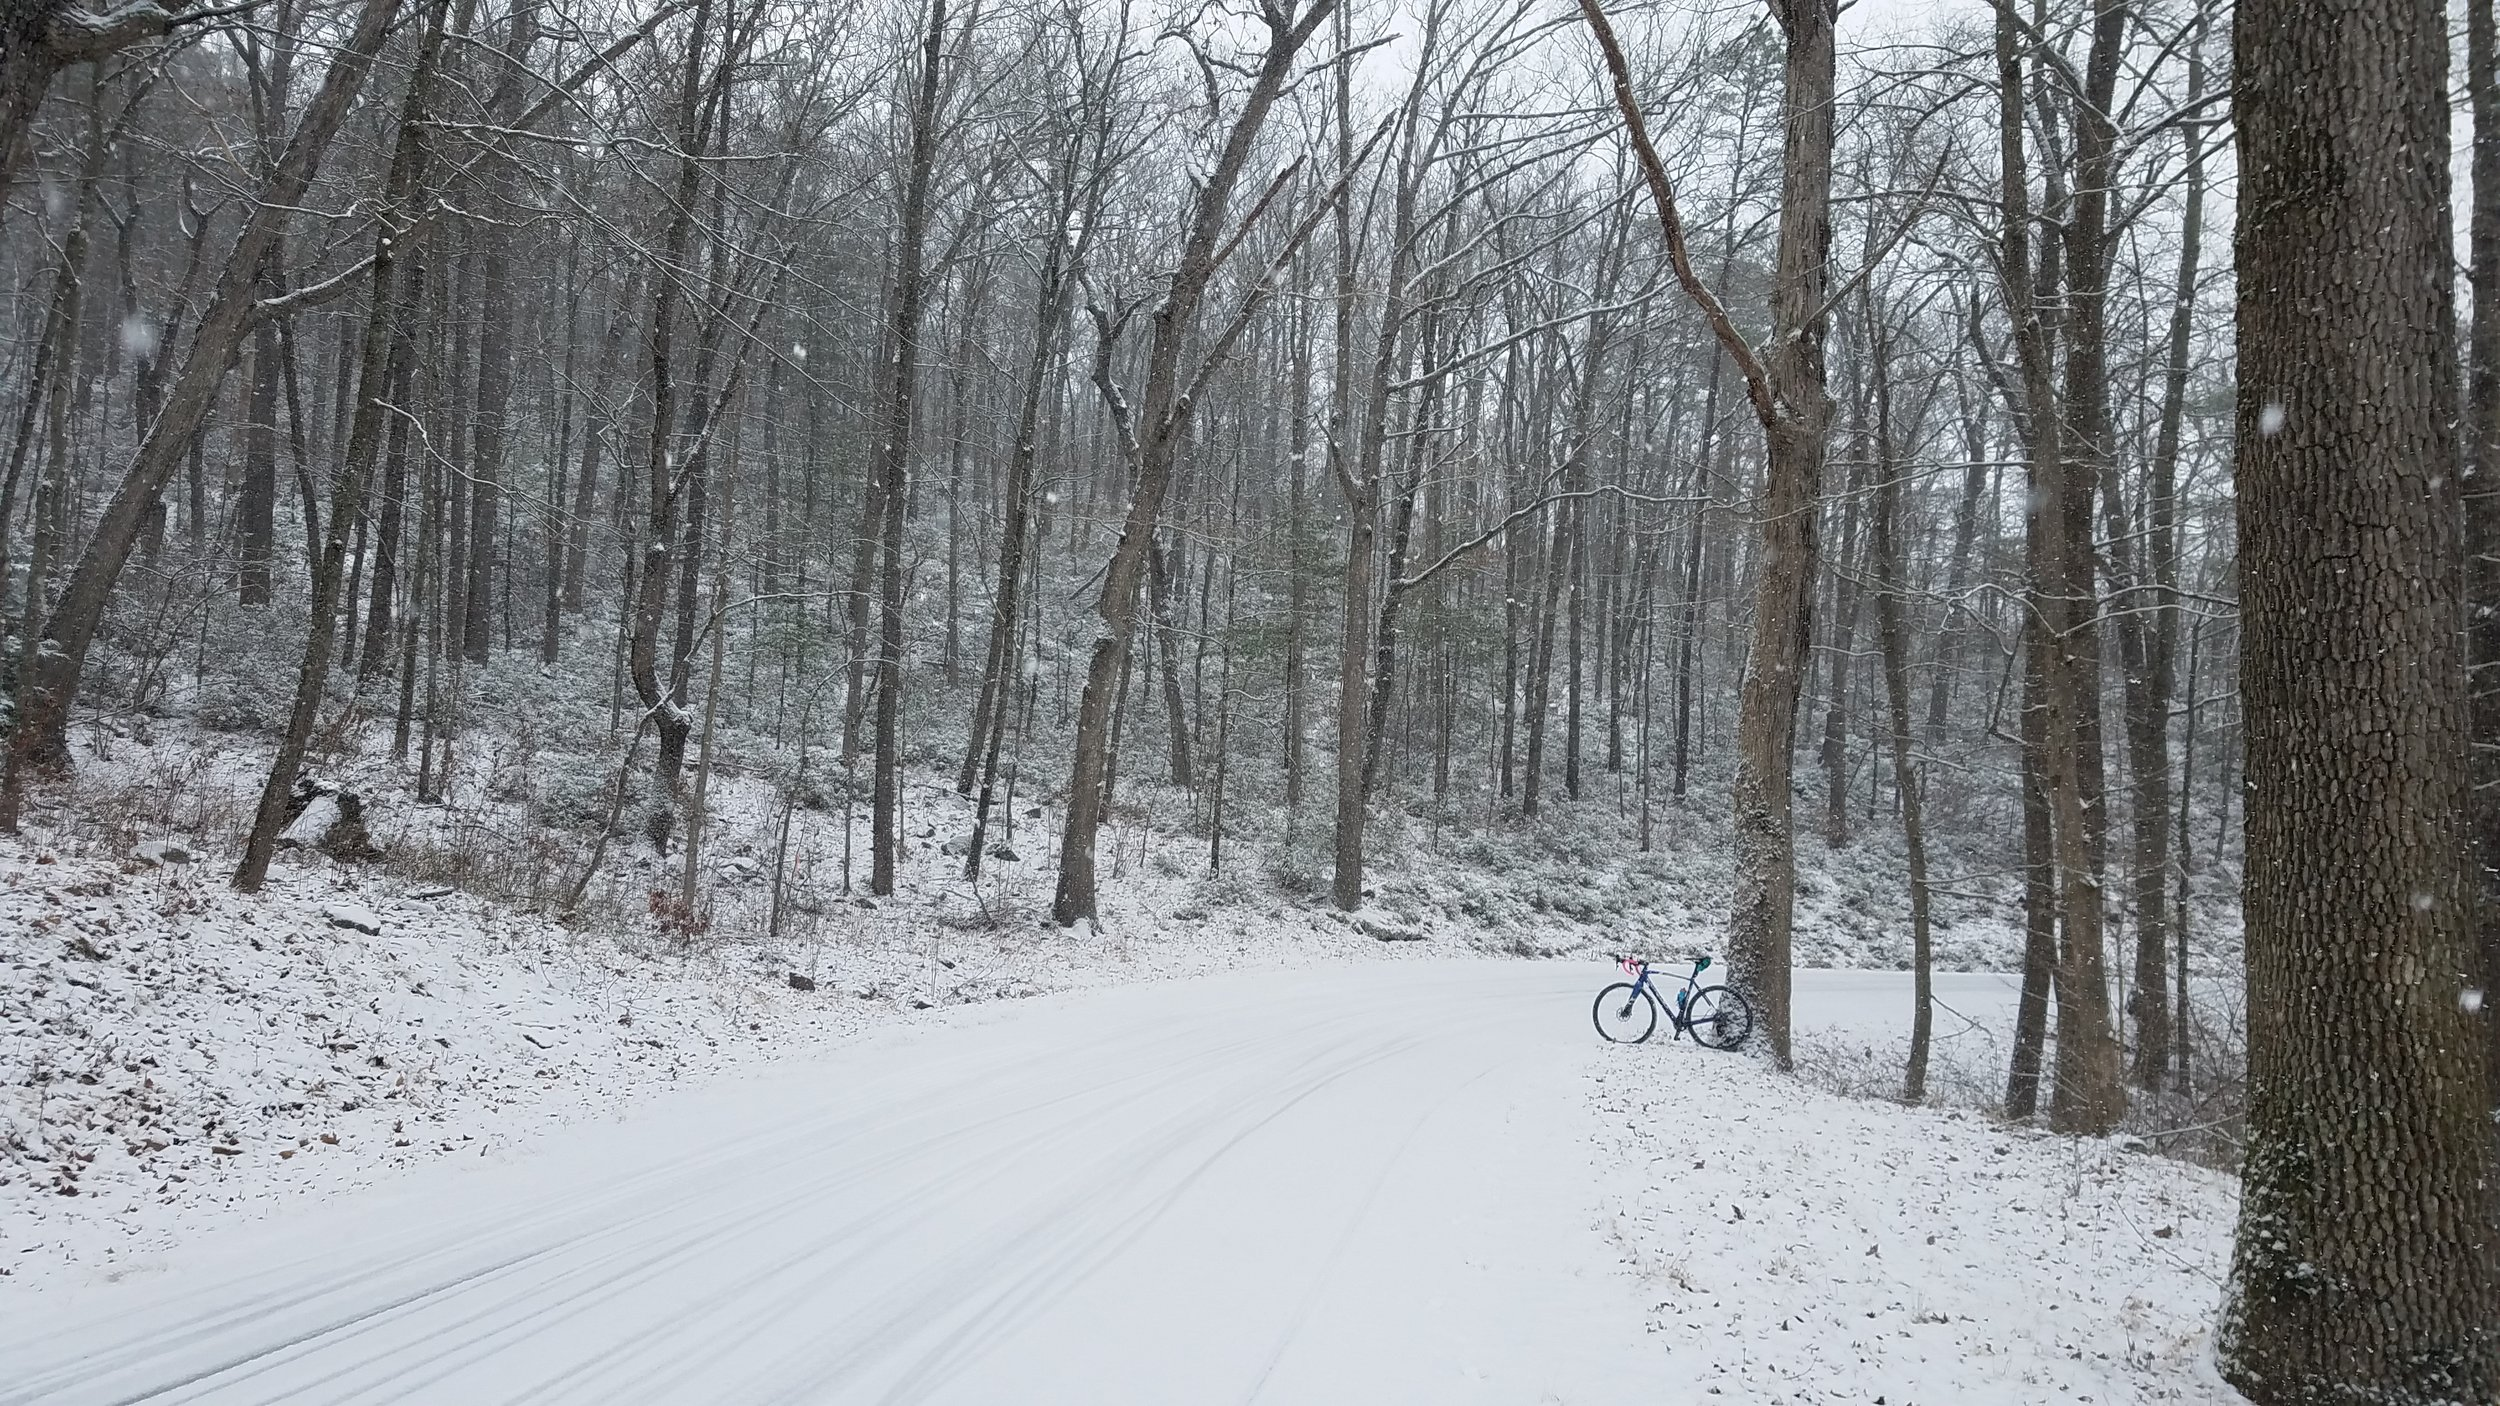 The ride back down the rode was magical. Just me & my bike, the snow, the woods, and the birds :)